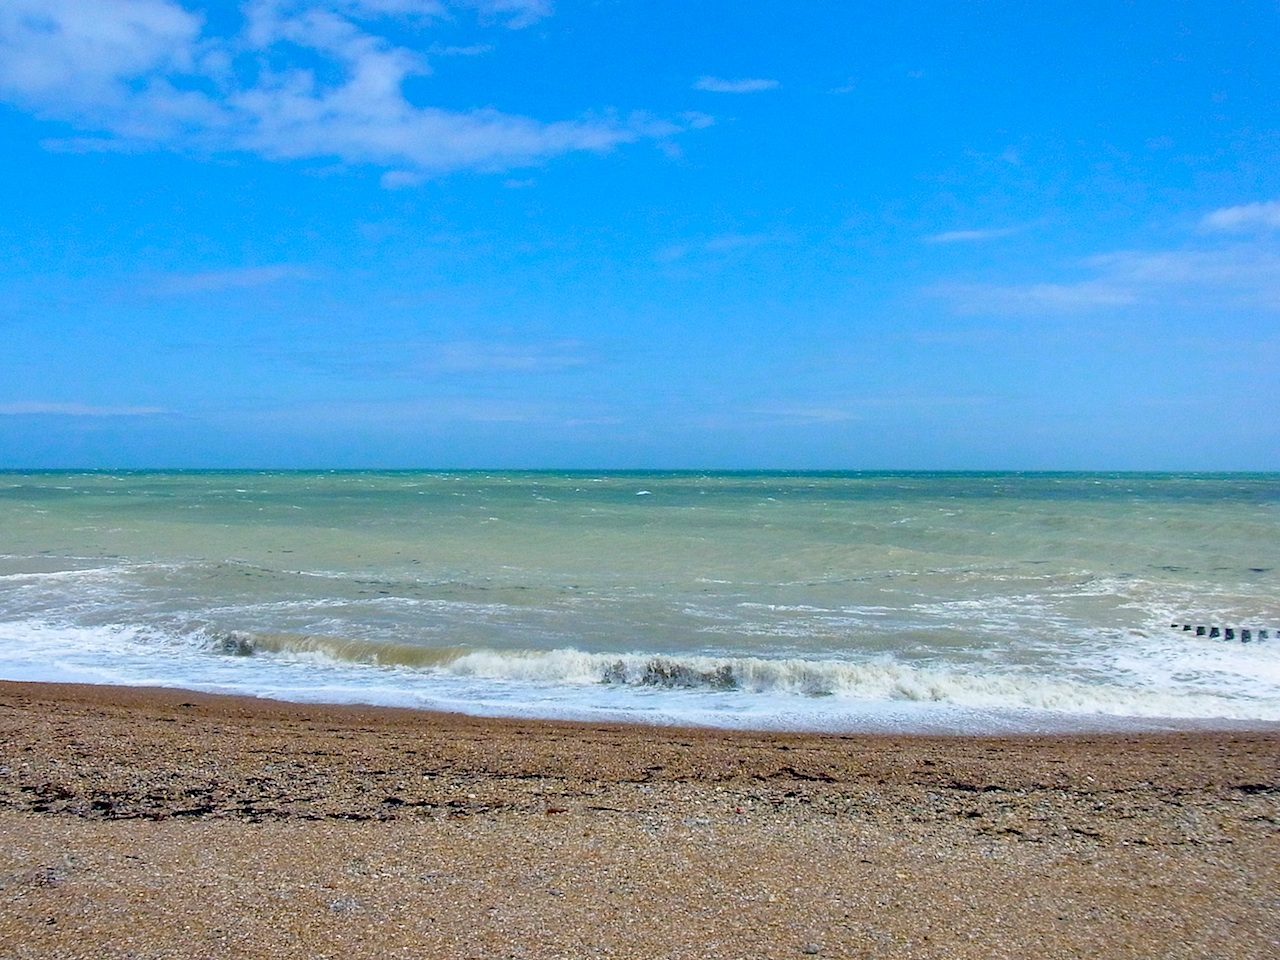 eastbournesea4.jpg